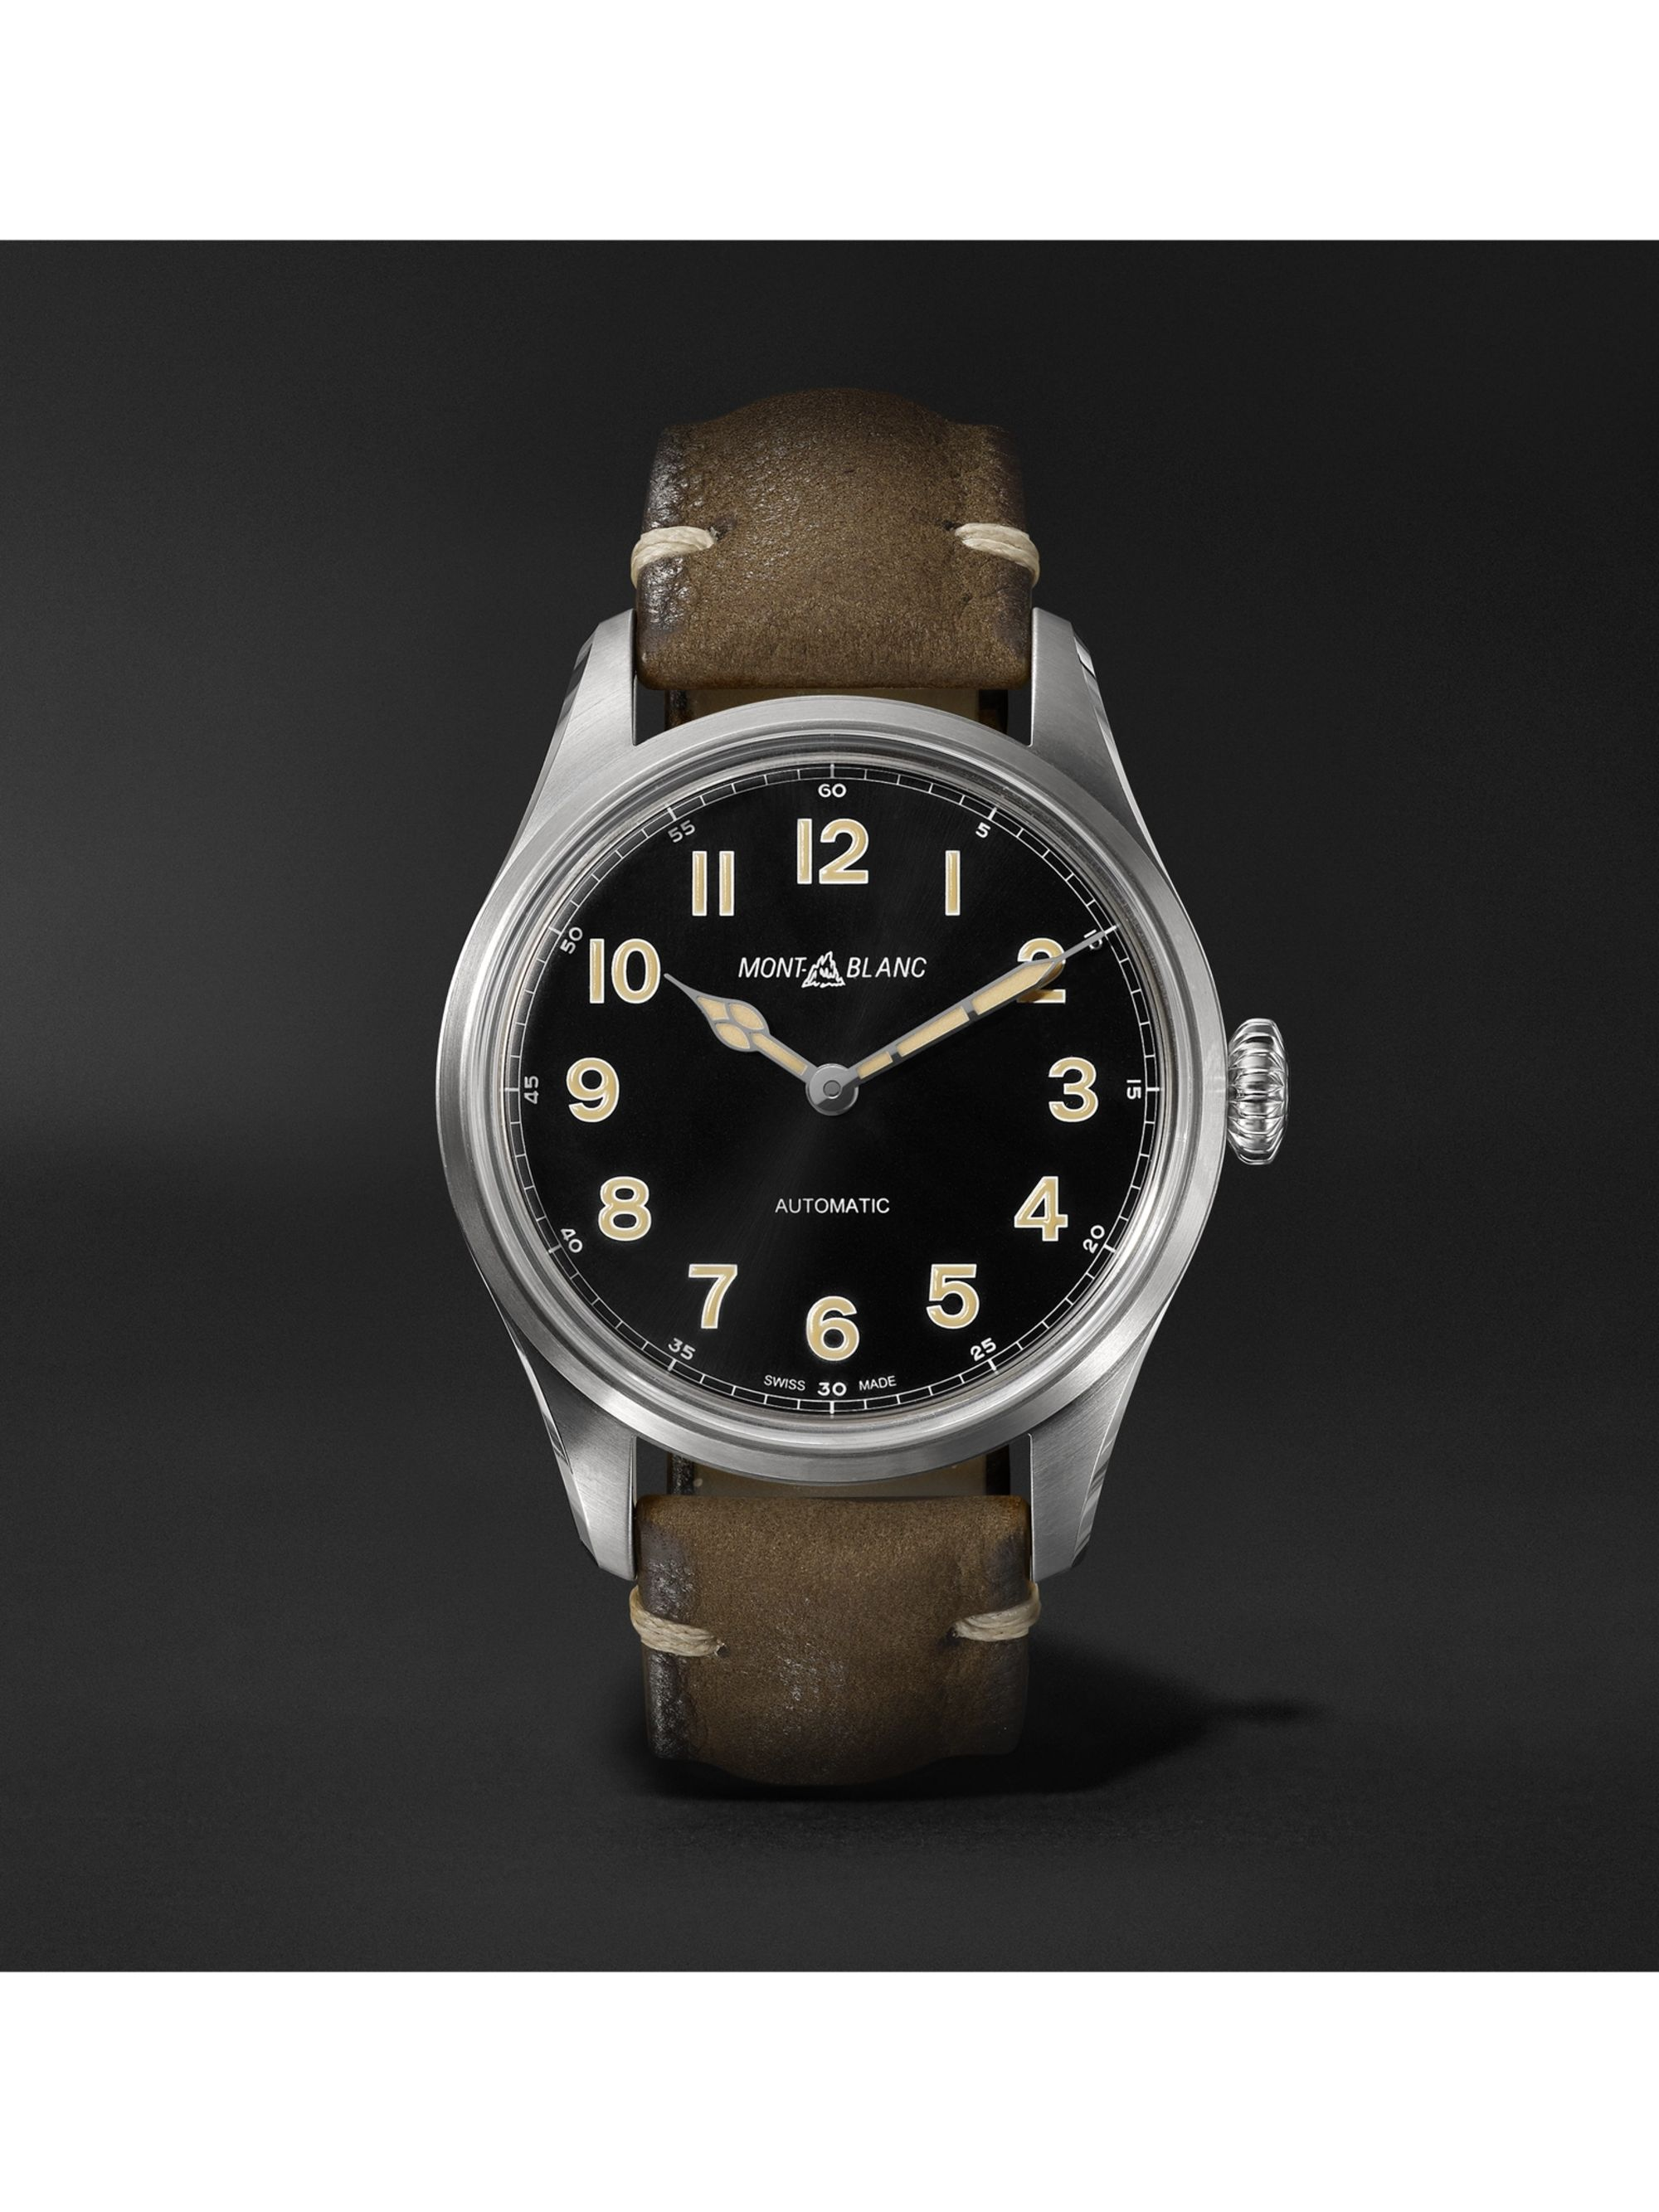 Montblanc 1858 Geosphere Limited Edition Automatic 40mm Stainless Steel and Nubuck Watch, Ref. No. 119907